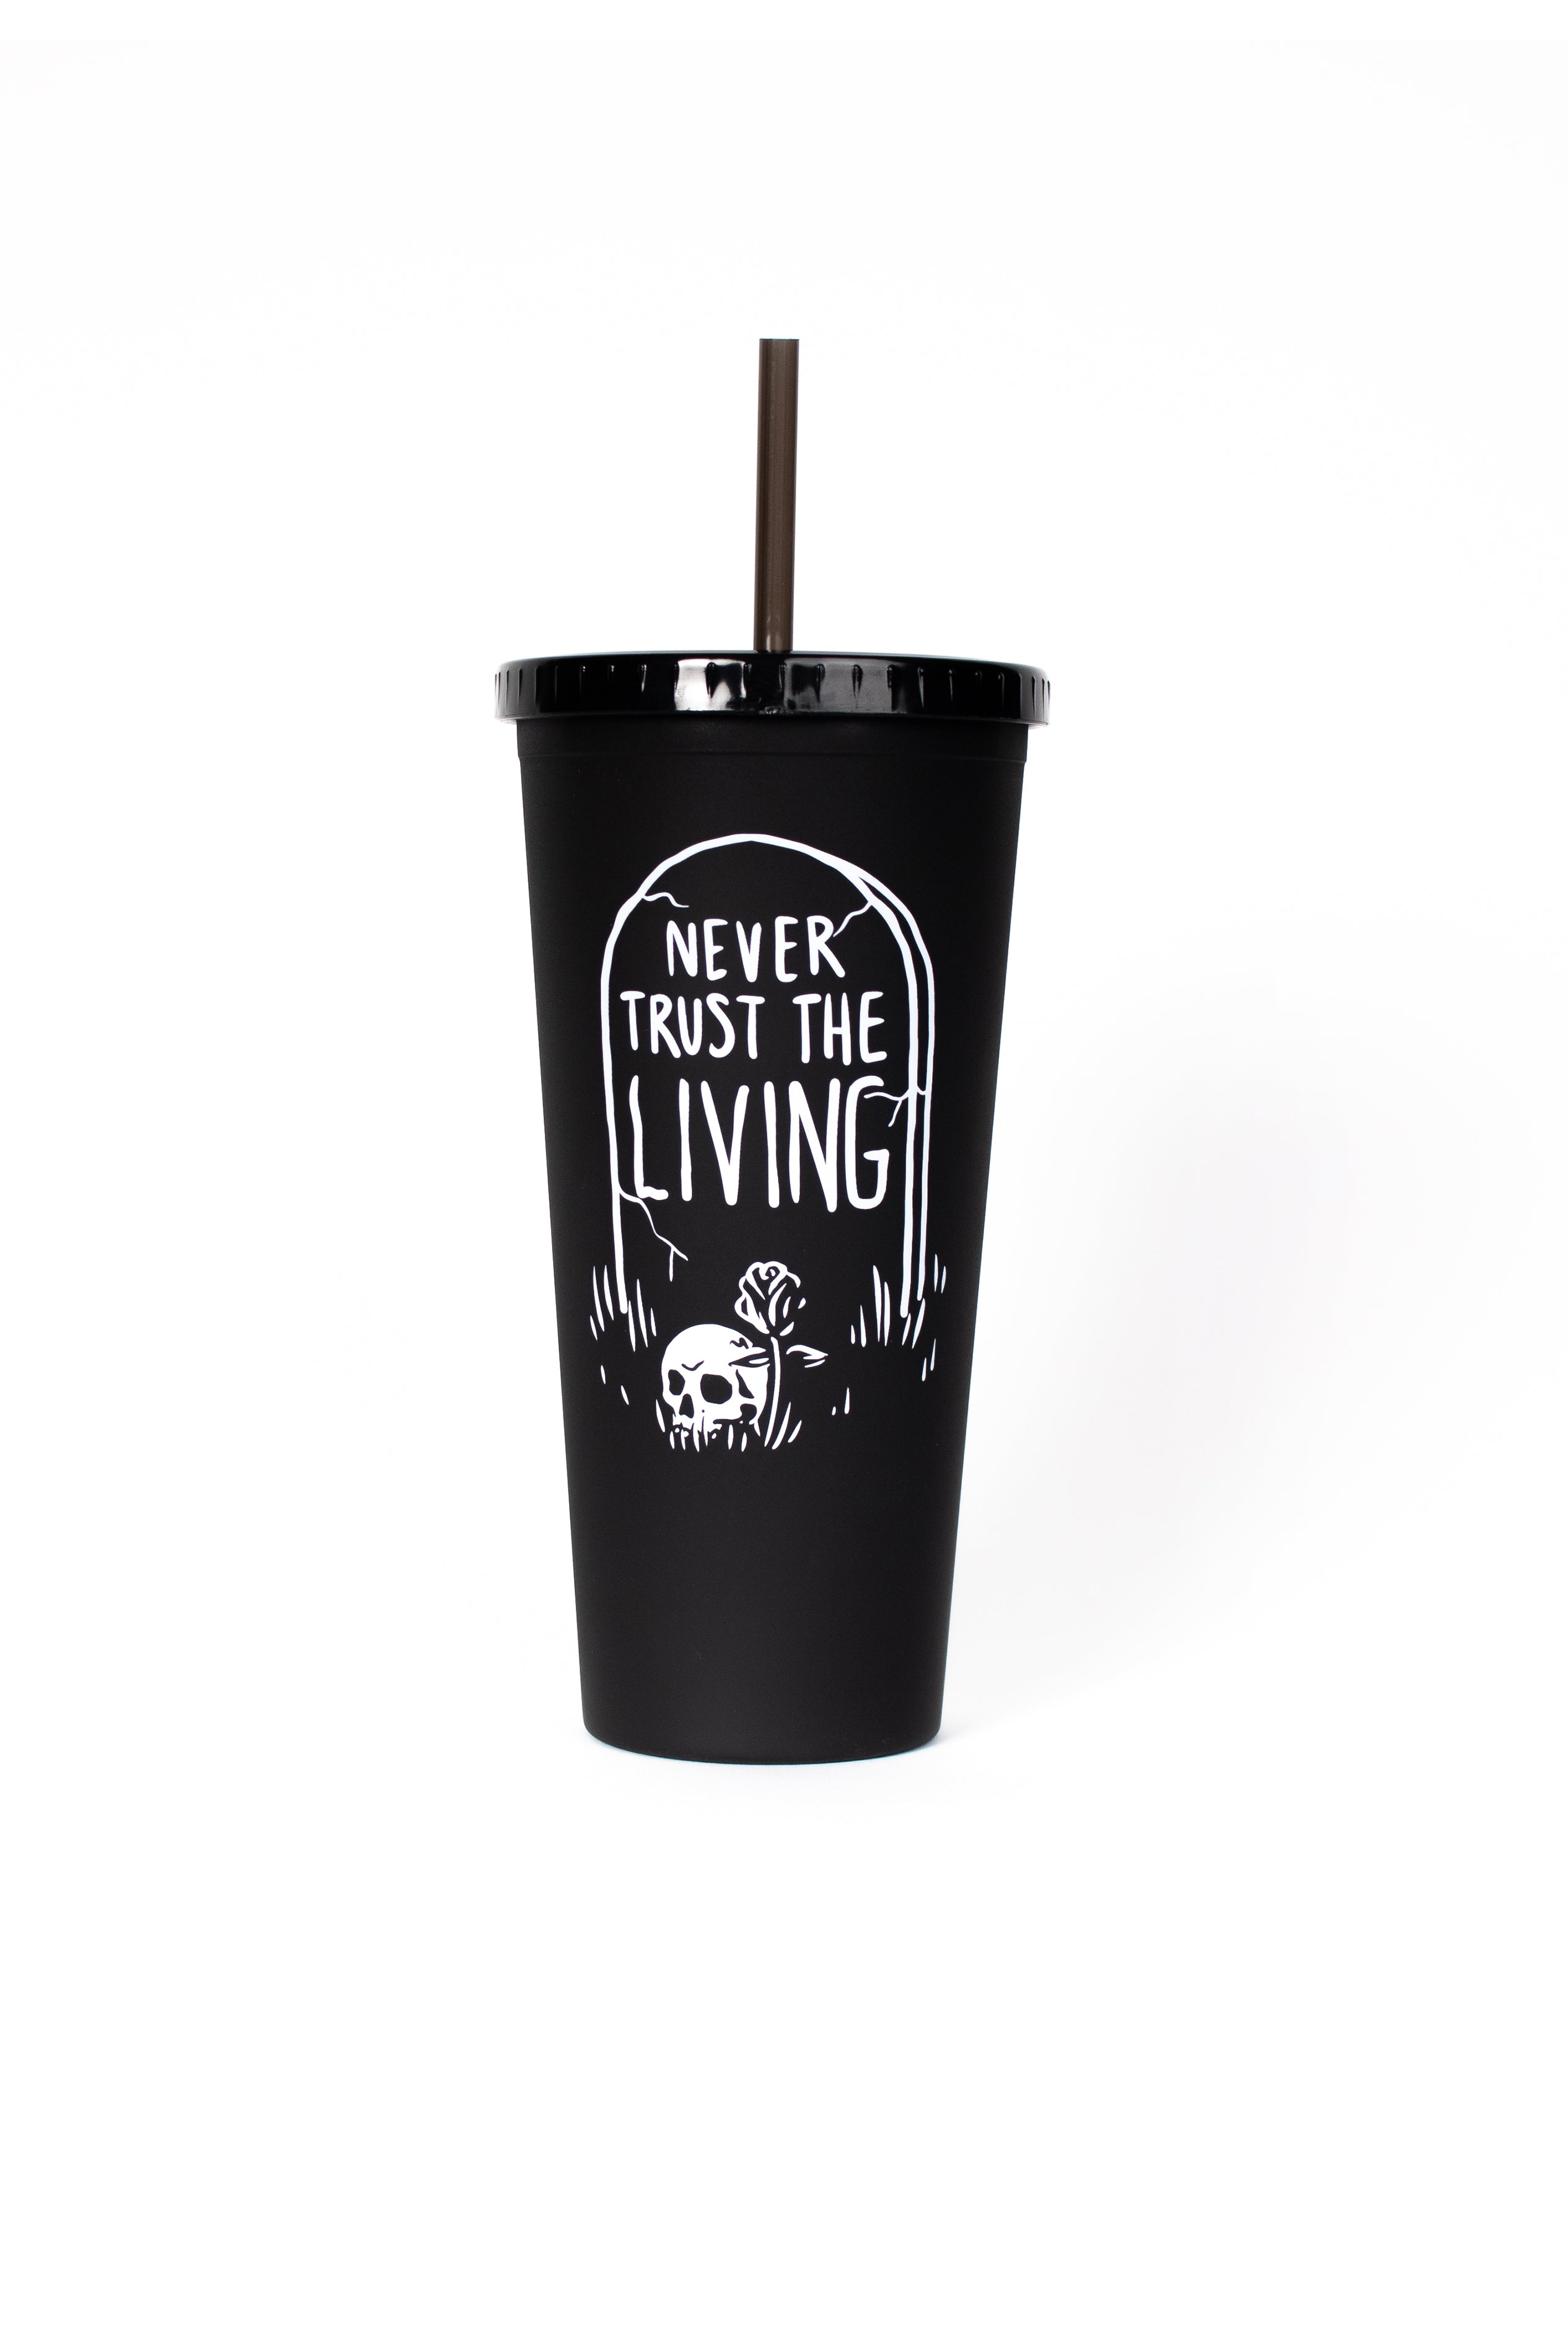 Never Trust The Living - Travel Cup